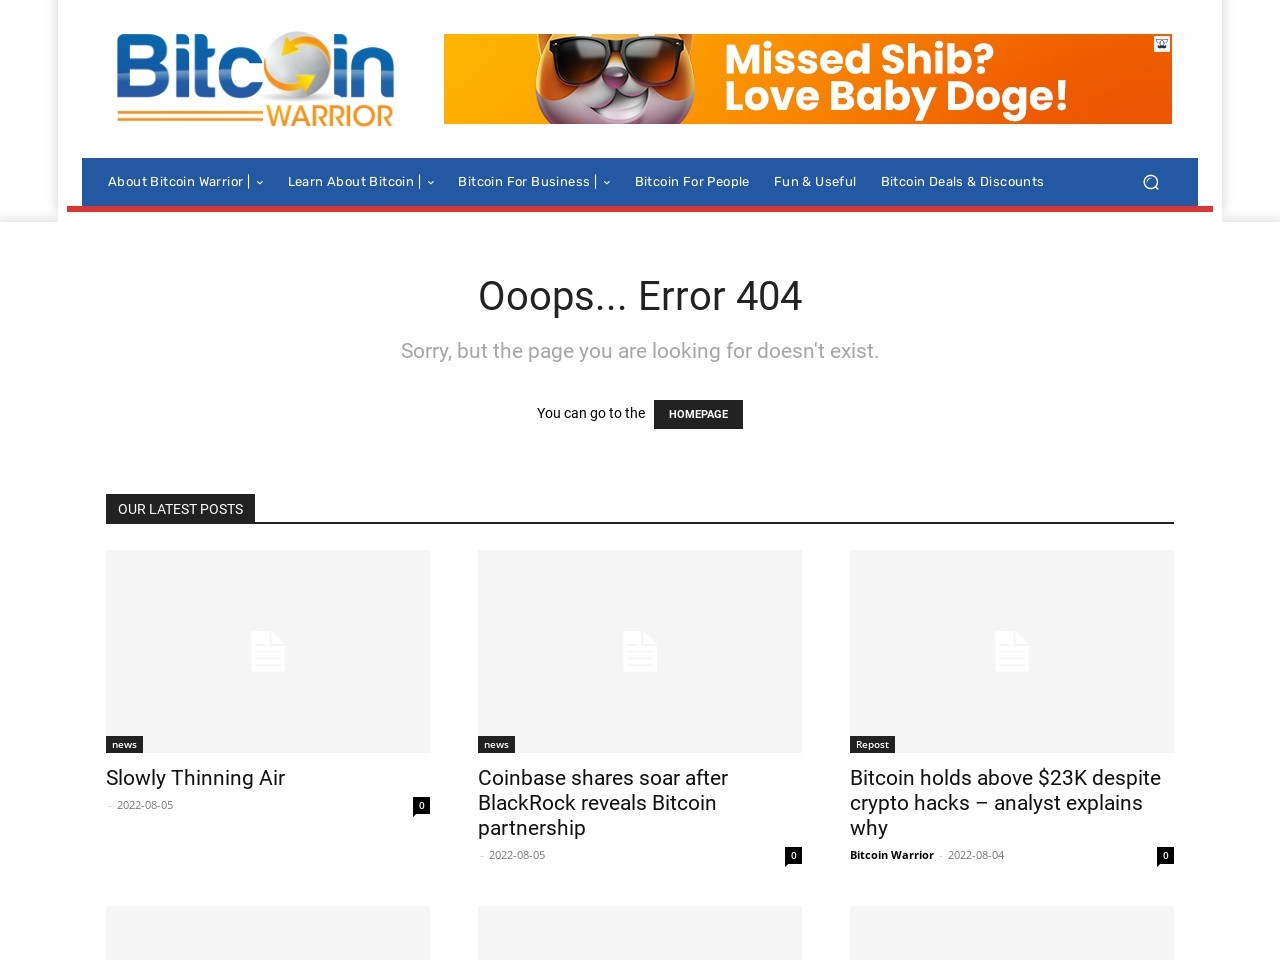 QR Code Fraud Could Result In $50,000 of Stolen Bitcoin Each Year